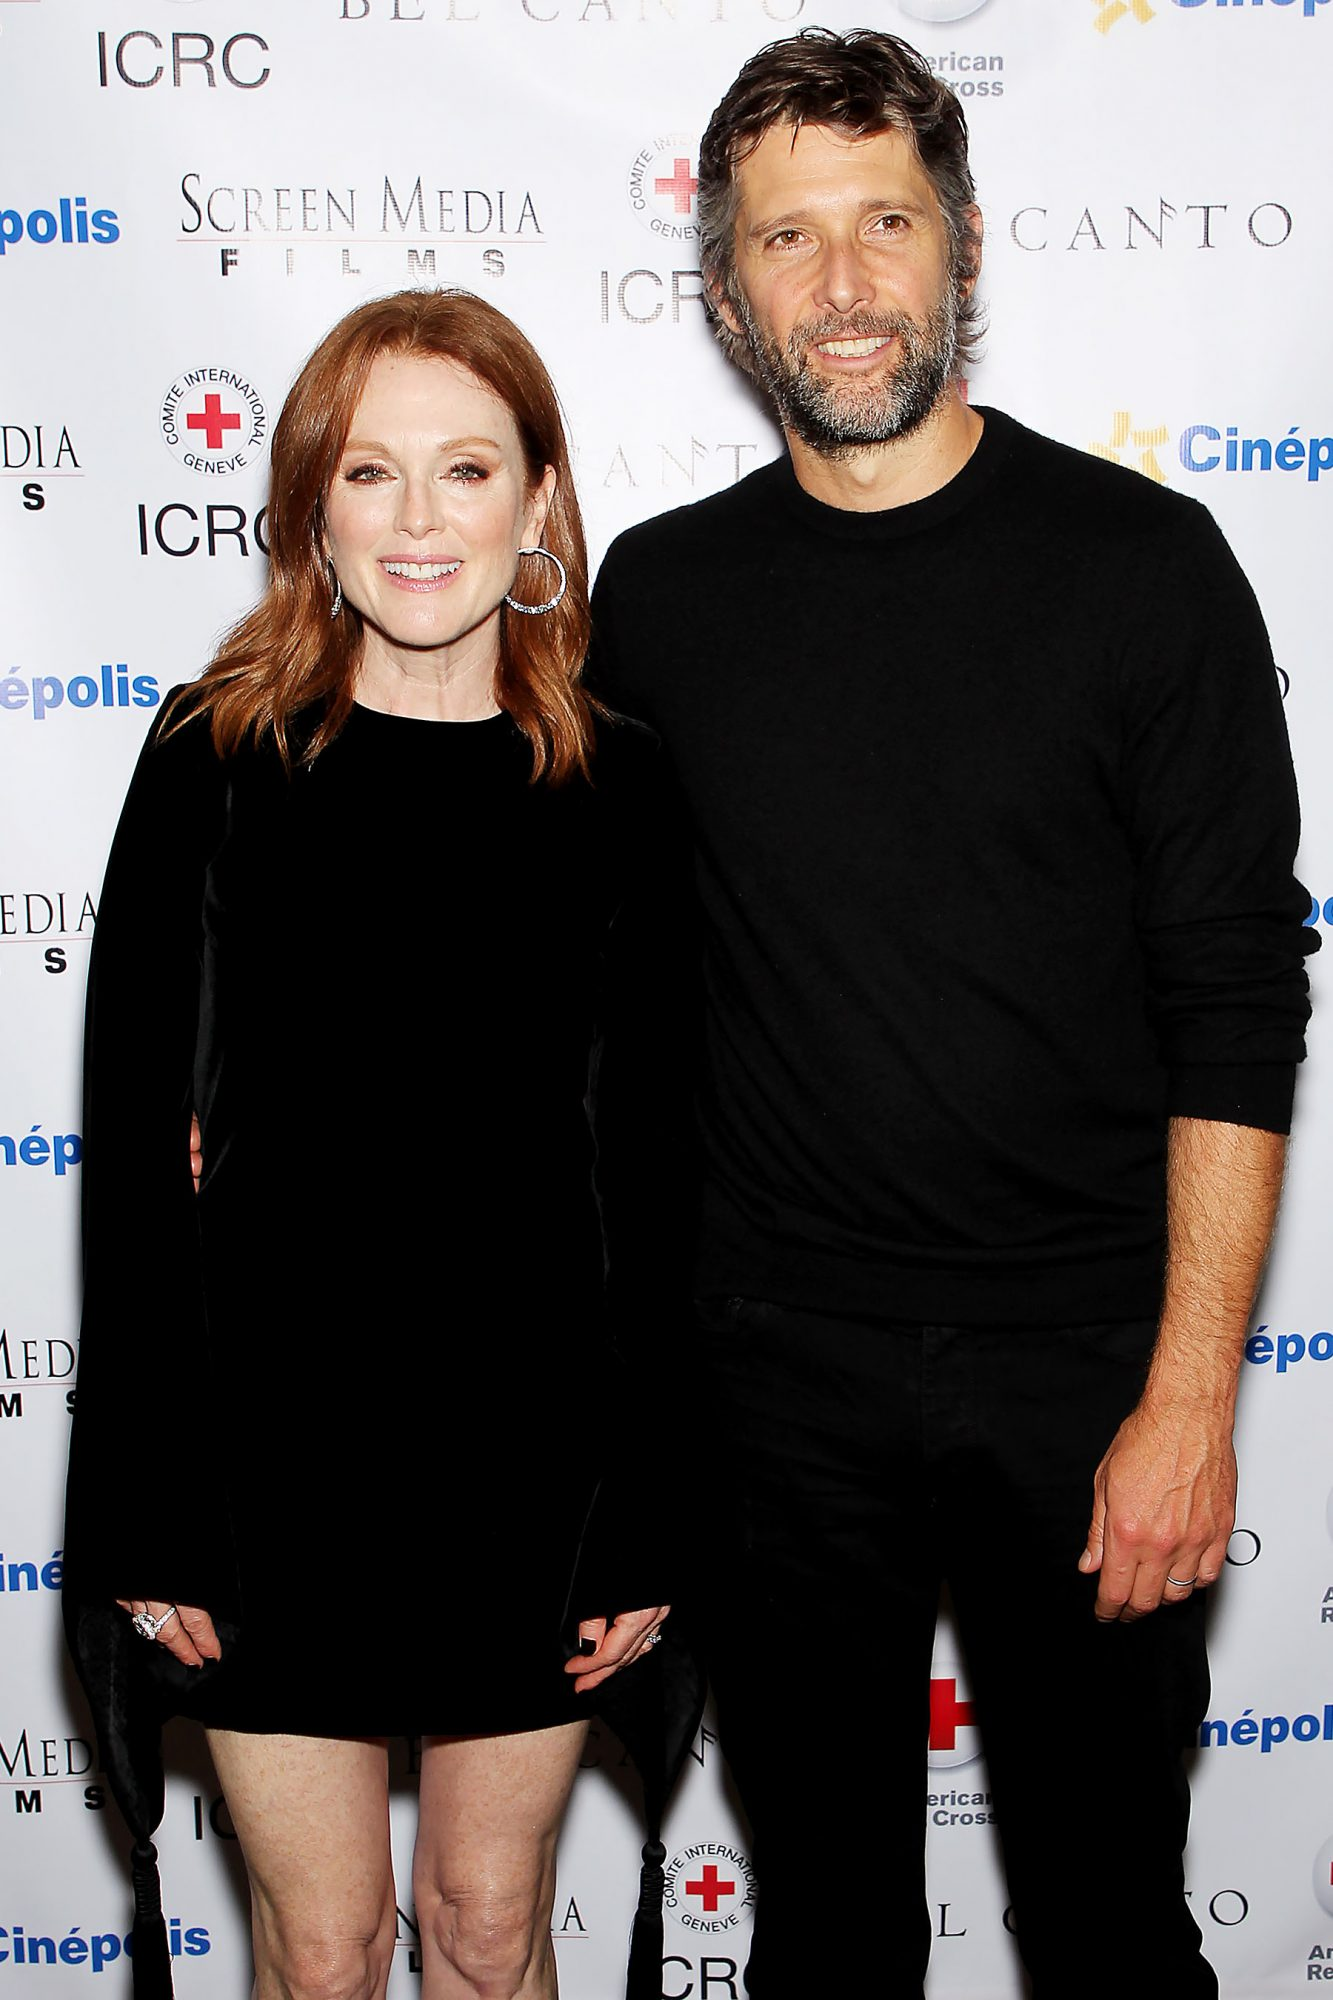 New York Premiere of Screen Media's new Film 'Bel Canto' hosted by the American Red Cross & Cinepolis Theaters, New York, USA - 13 Sep 2018